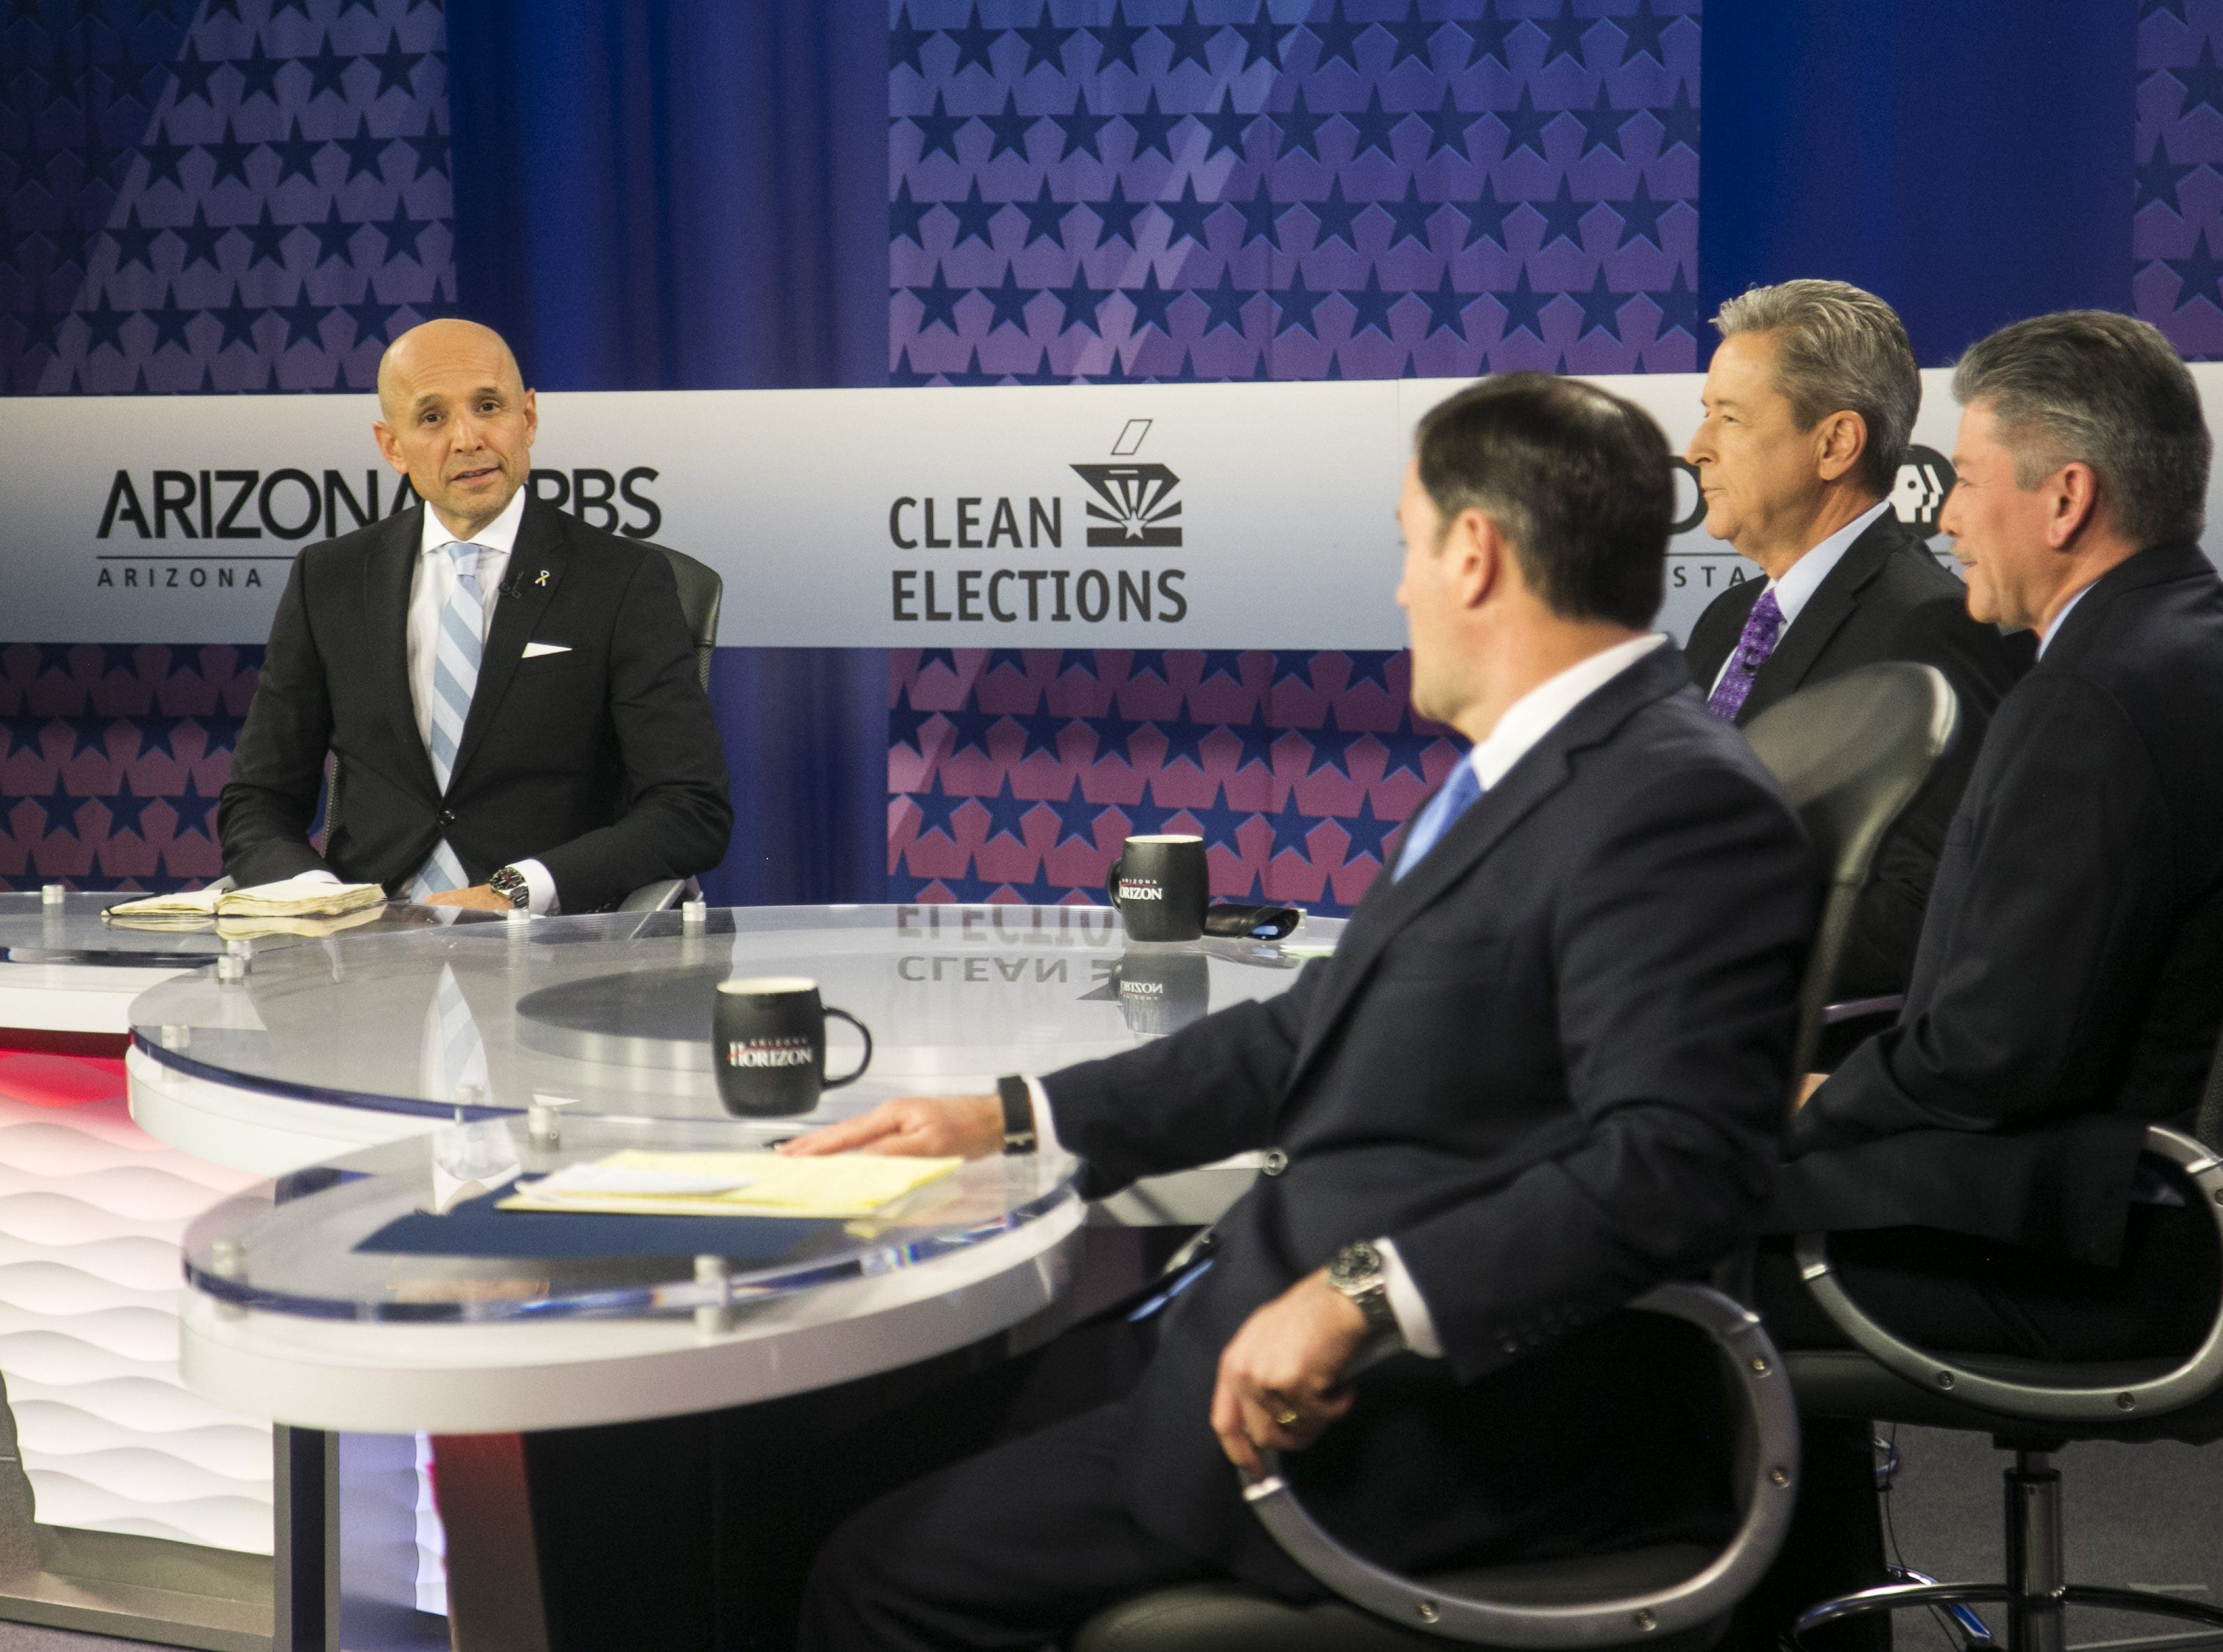 Gubernatorial candidates listen to questions from journalists before the a debate on PBS inside ASU's Walter Cronkite School of Journalism and Mass Communication in Phoenix on Sept. 24, 2018.